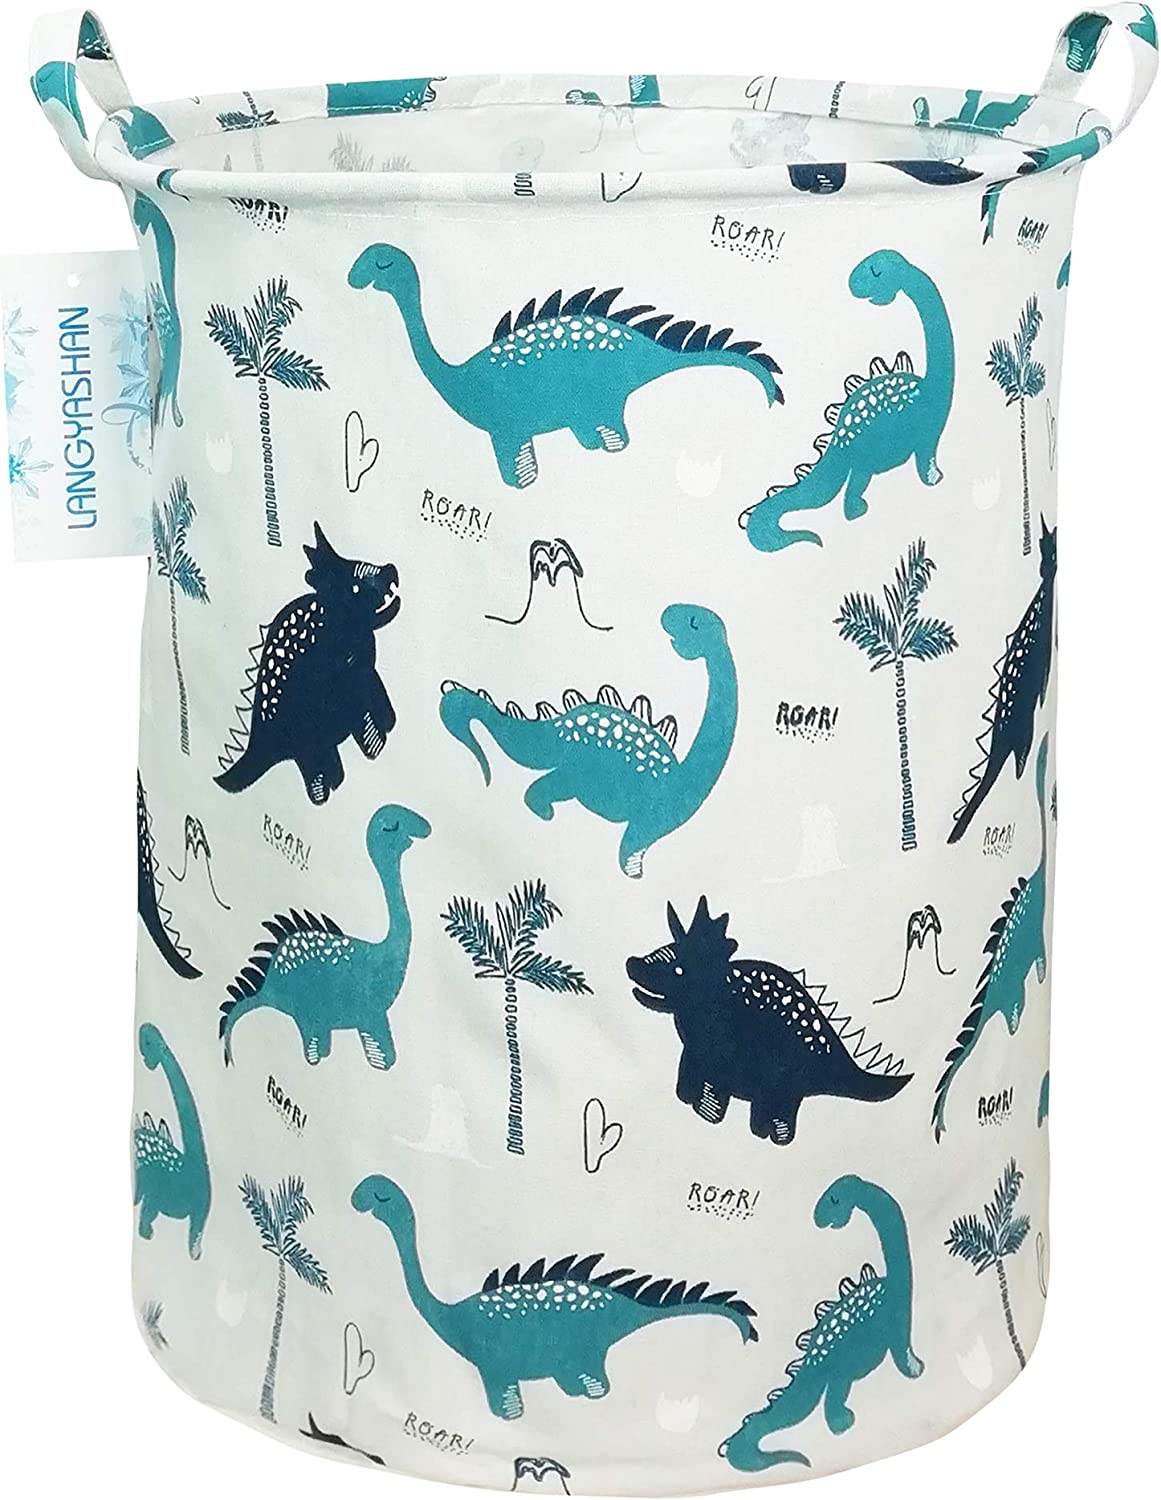 Clothes,Baby Nursery LANGYASHAN Storage Bin,Canvas Fabric Collapsible Organizer Basket for Laundry Hamper,Toy Bins,Gift Baskets Green Cactus Bedroom